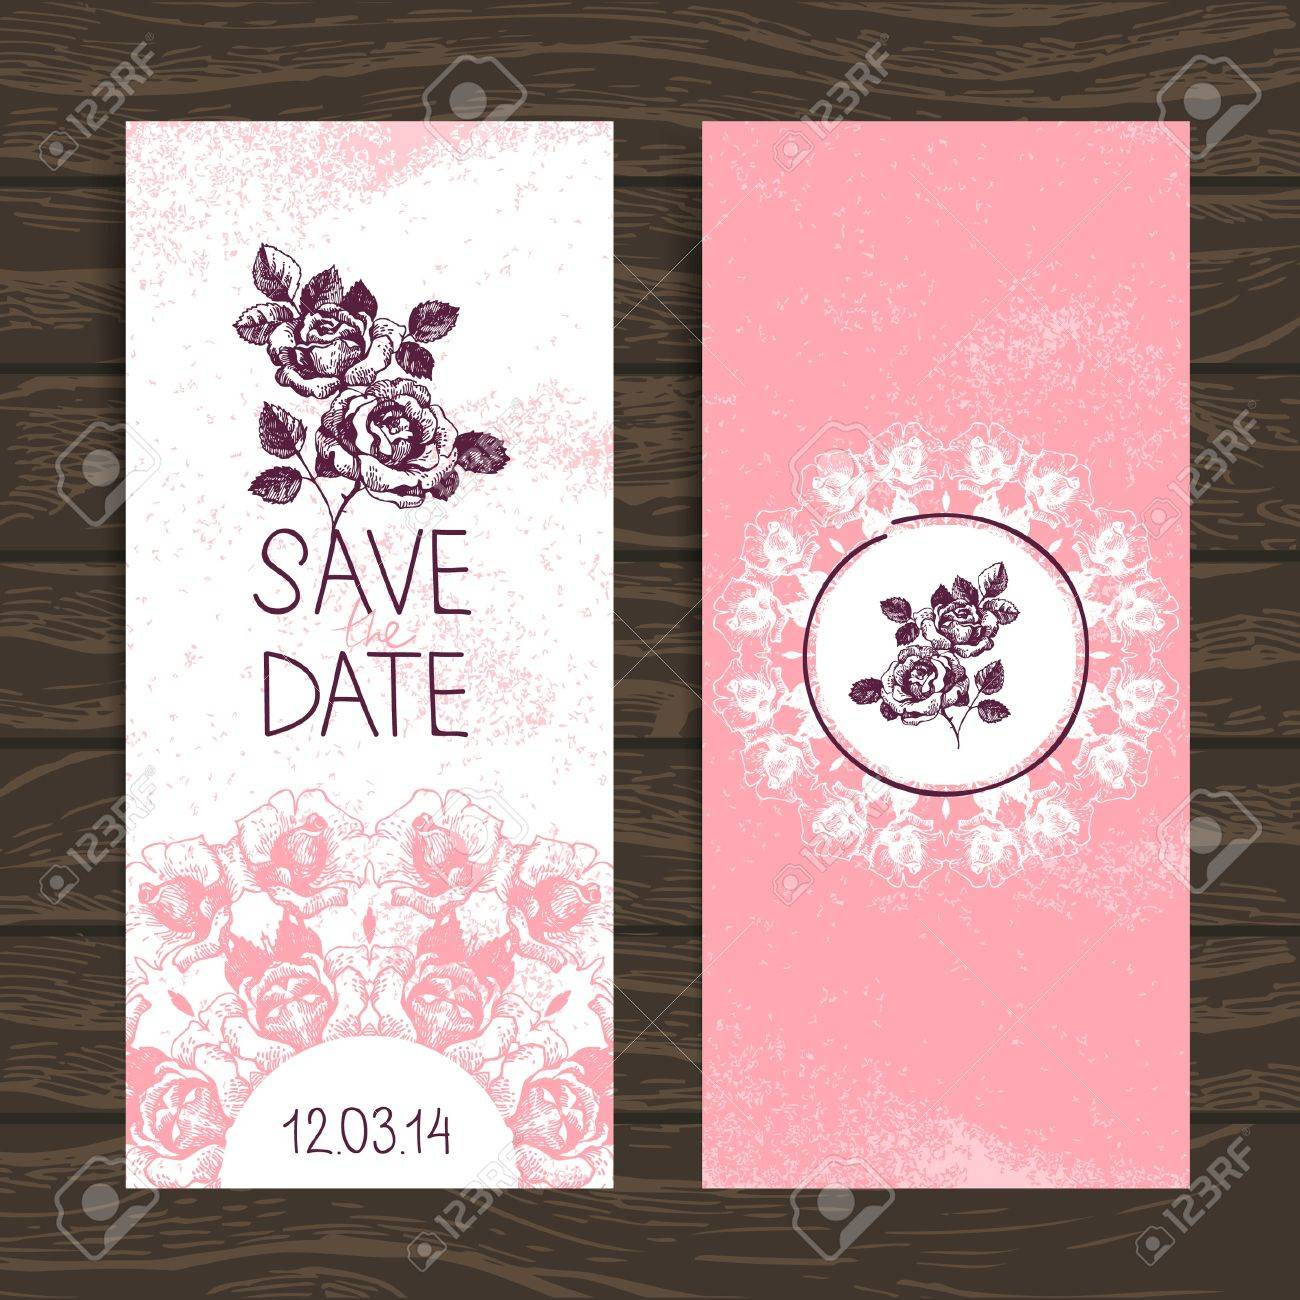 Wedding invitation card Stock Vector - 20027935